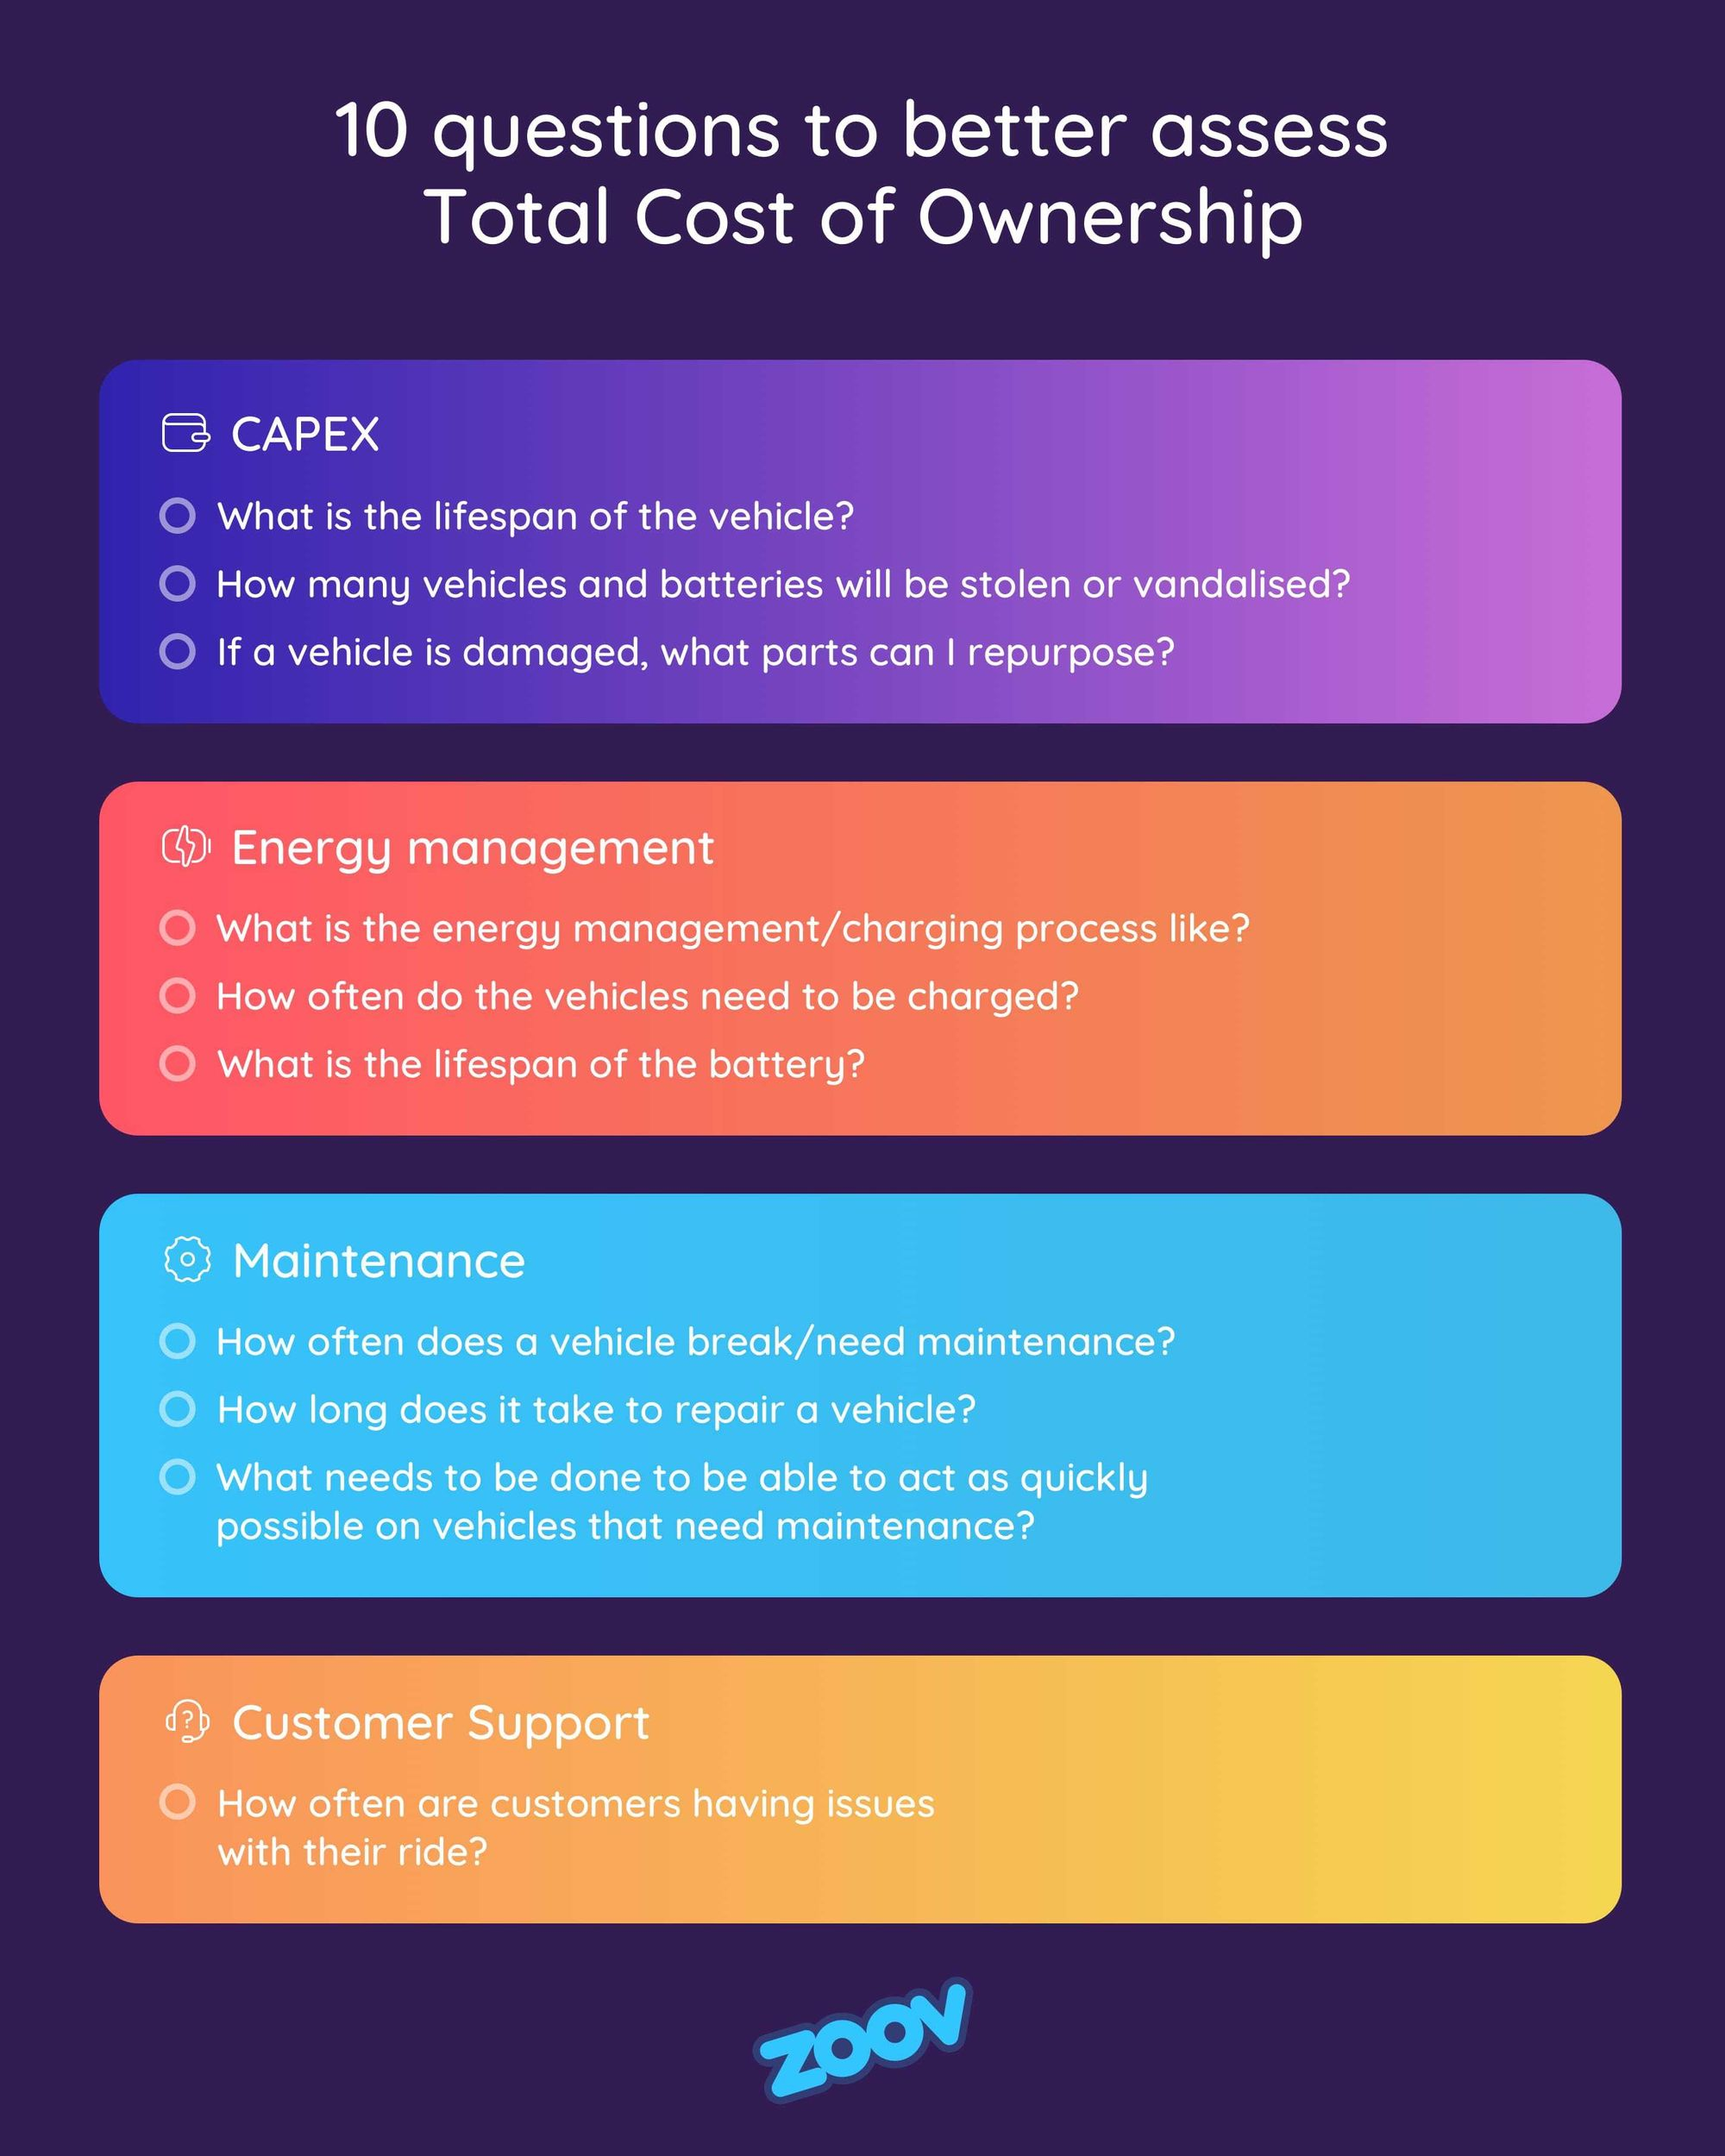 10 questions to better assess Total Cost of Ownership